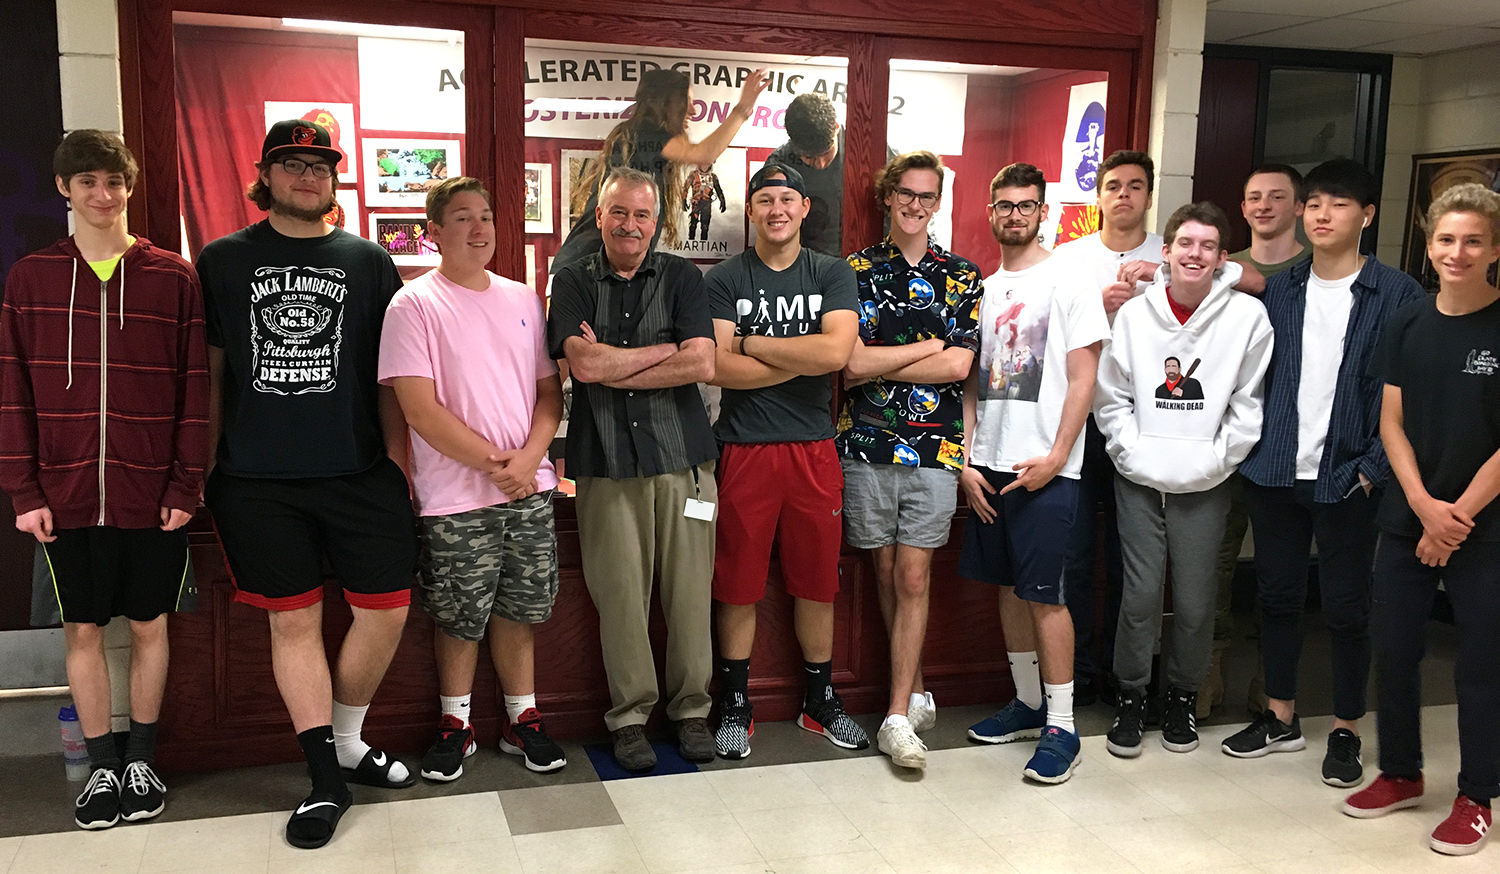 Mr. Inlander (Don) and his Accelerated Graphic Arts II students. Two students are in the glass case behind him, installing artwork.